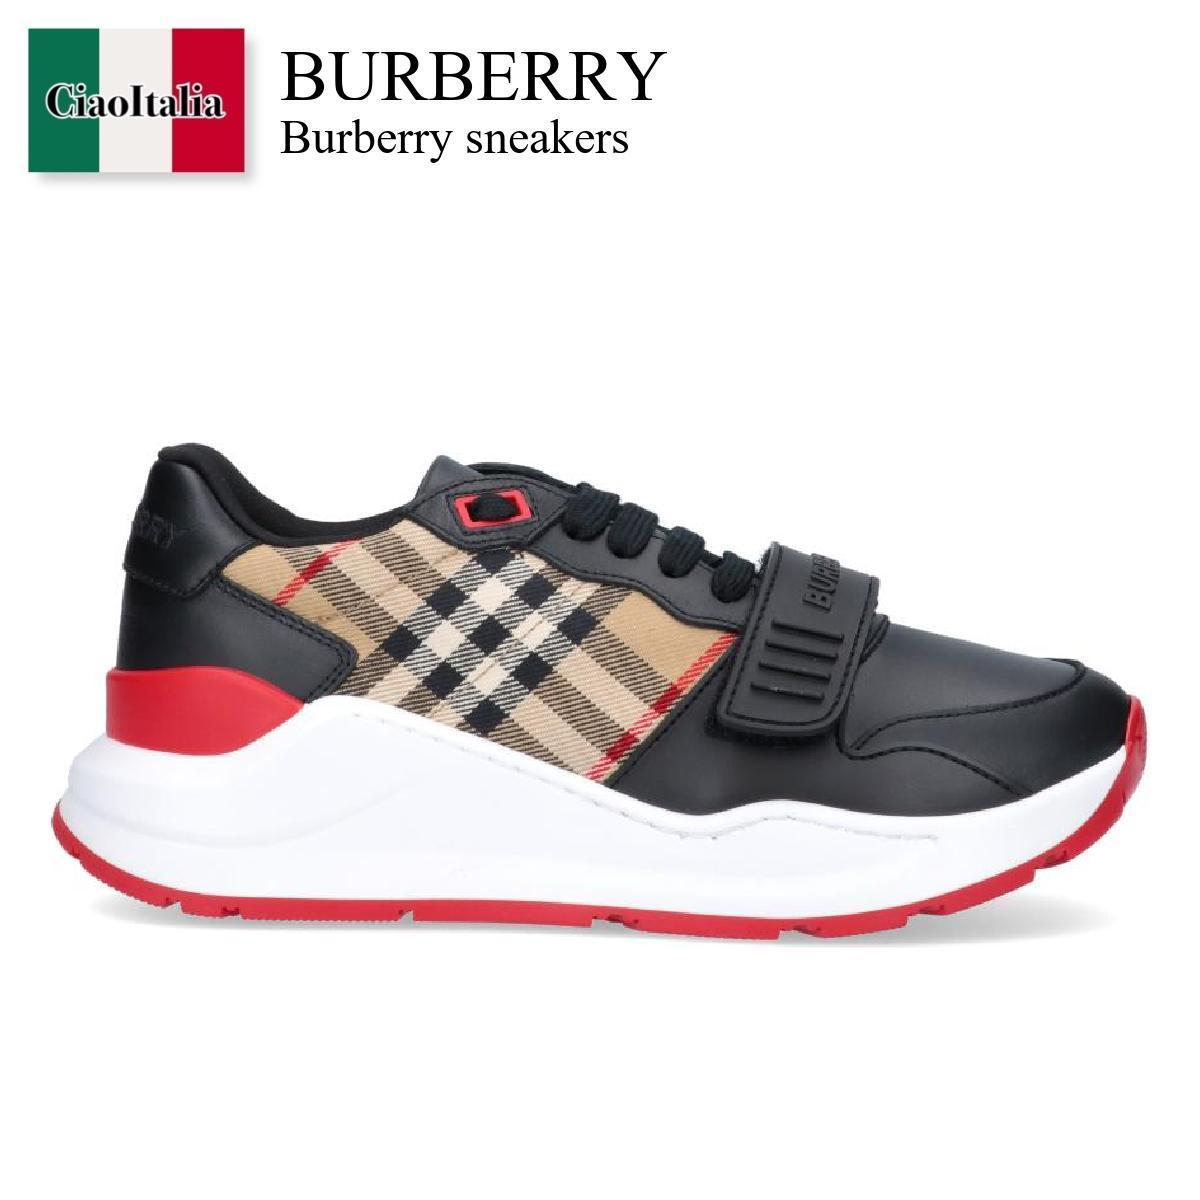 Burberry sneakers (Burberry/スニーカー) BURBERRY SNEAKERS  8038184A7626  8038184A